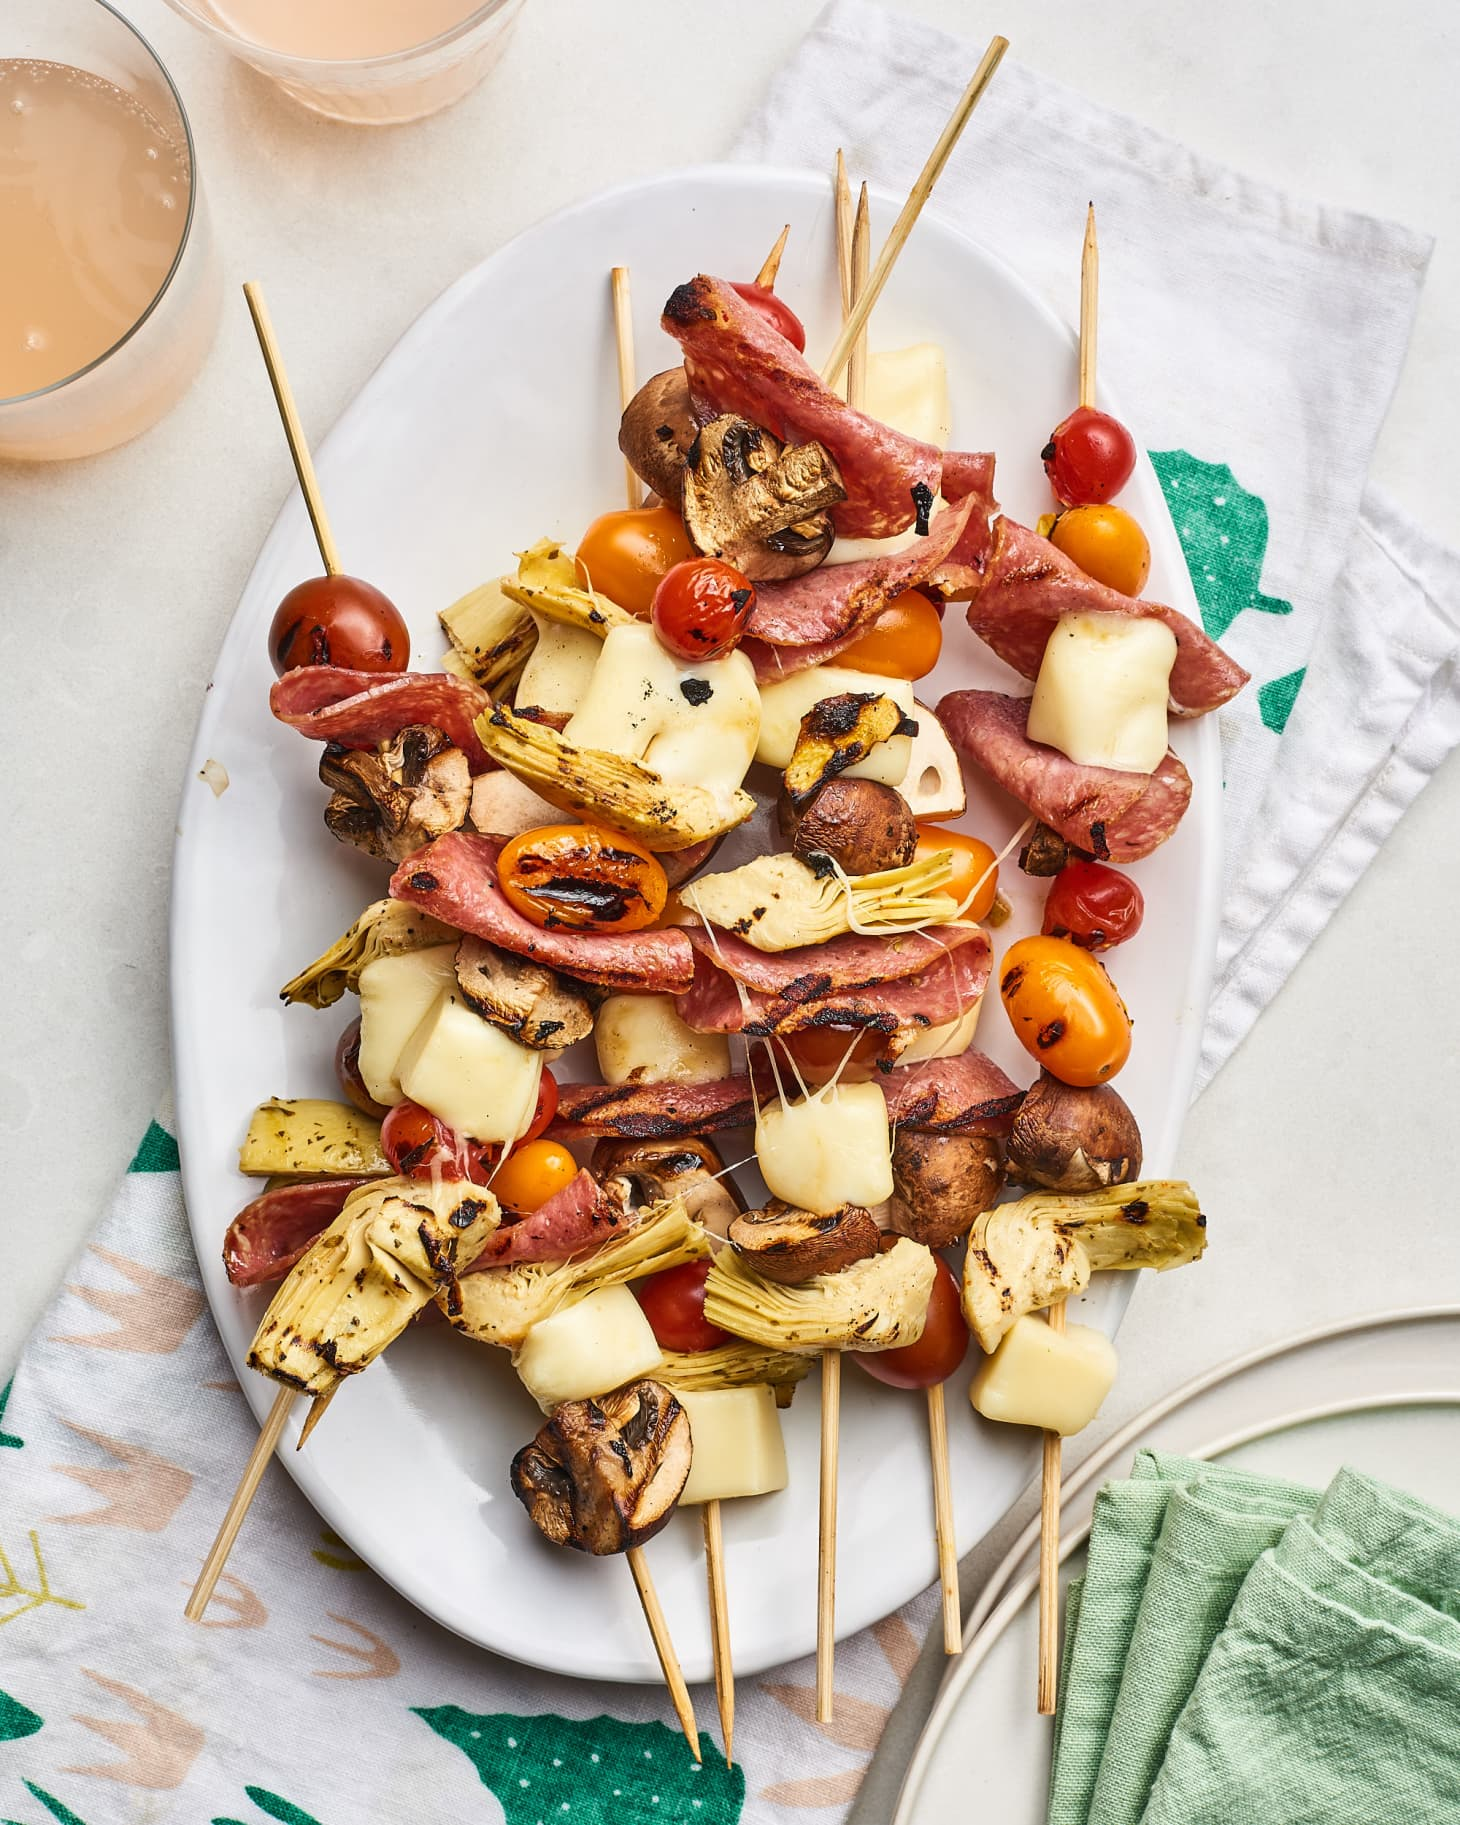 7 Things To Grill (That You're Not Grilling Yet)